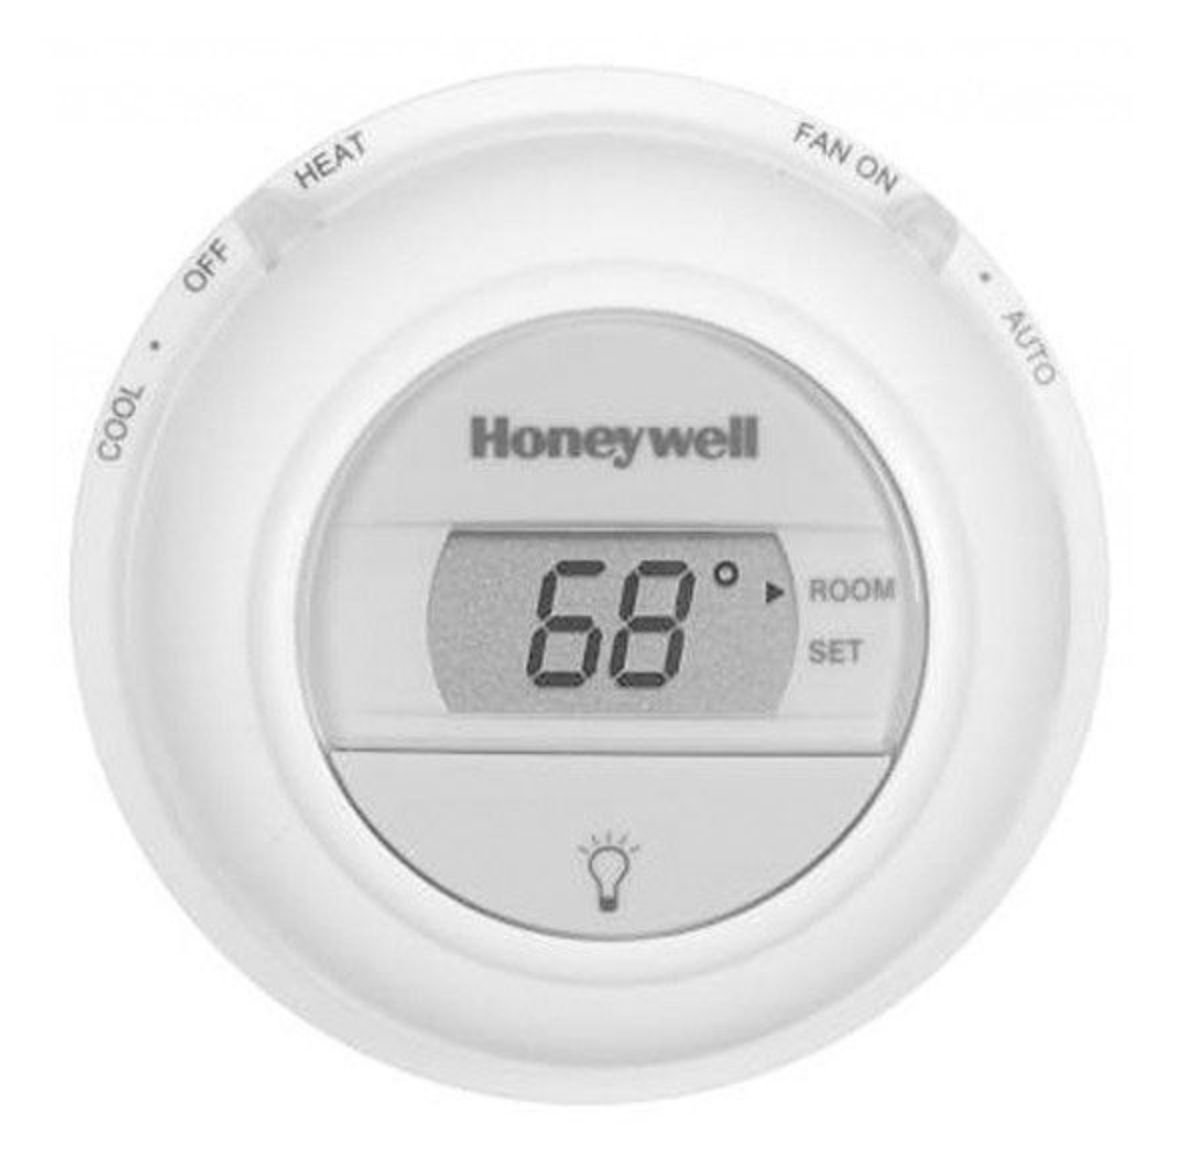 Honeywell Room Thermostat Wiring Faqs Q U0026 A On Honeywell Manual Guide